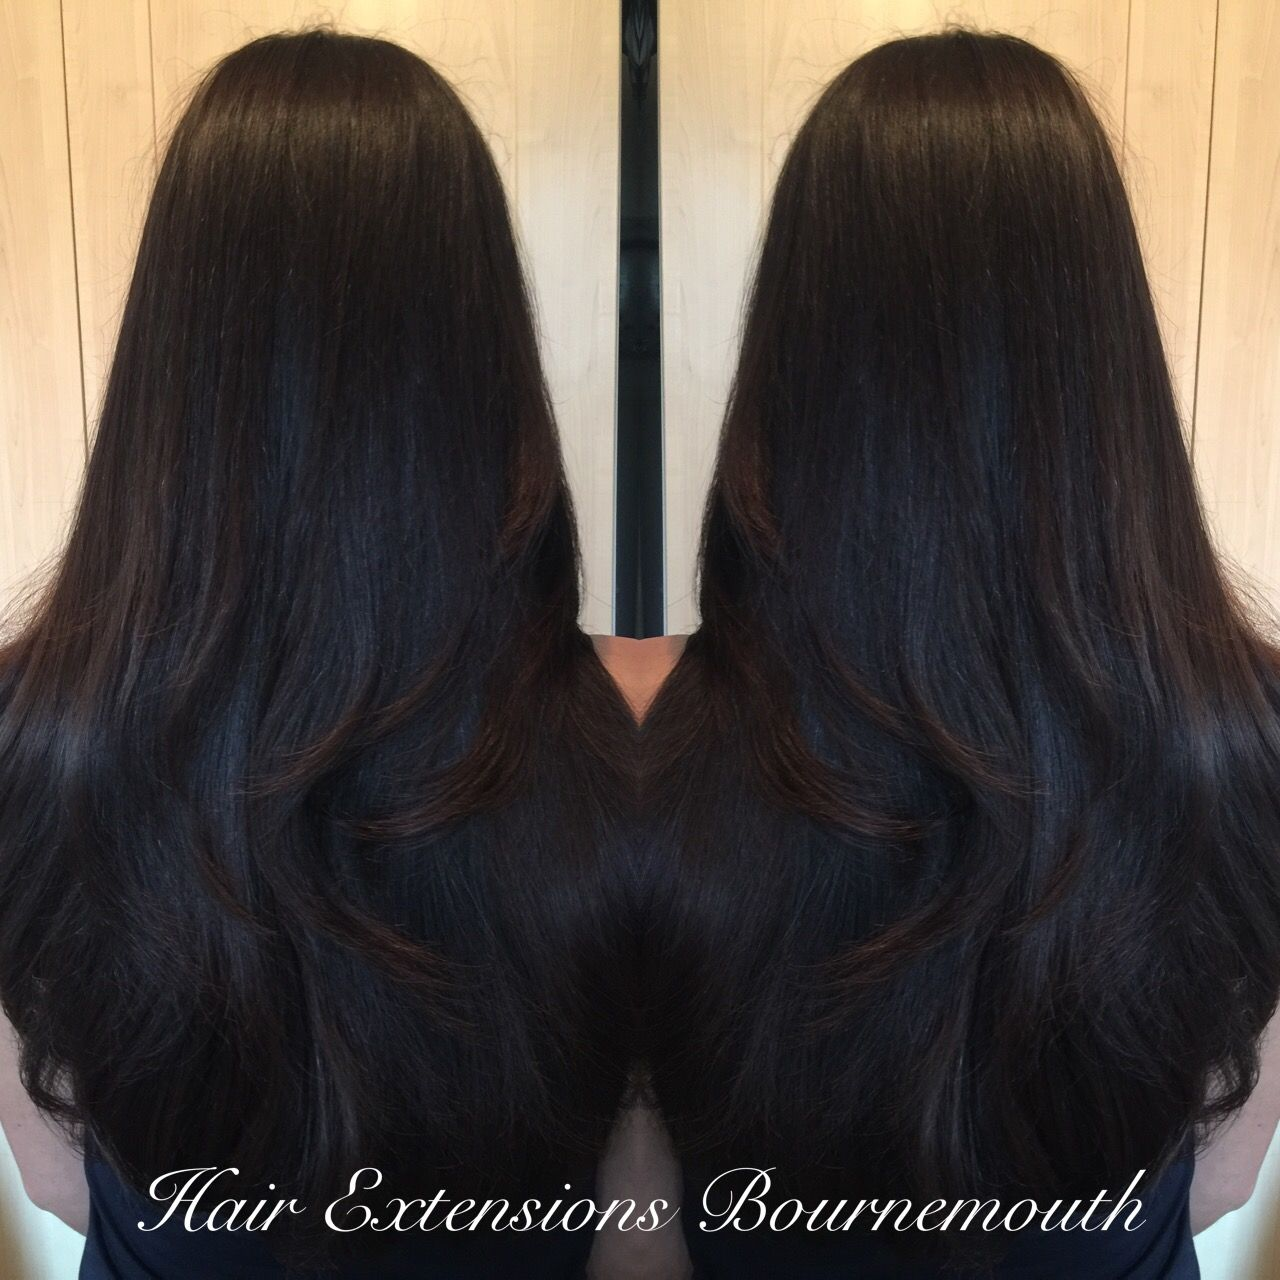 Beautyworks Hairextensionsbournemouth Balayage Blonde